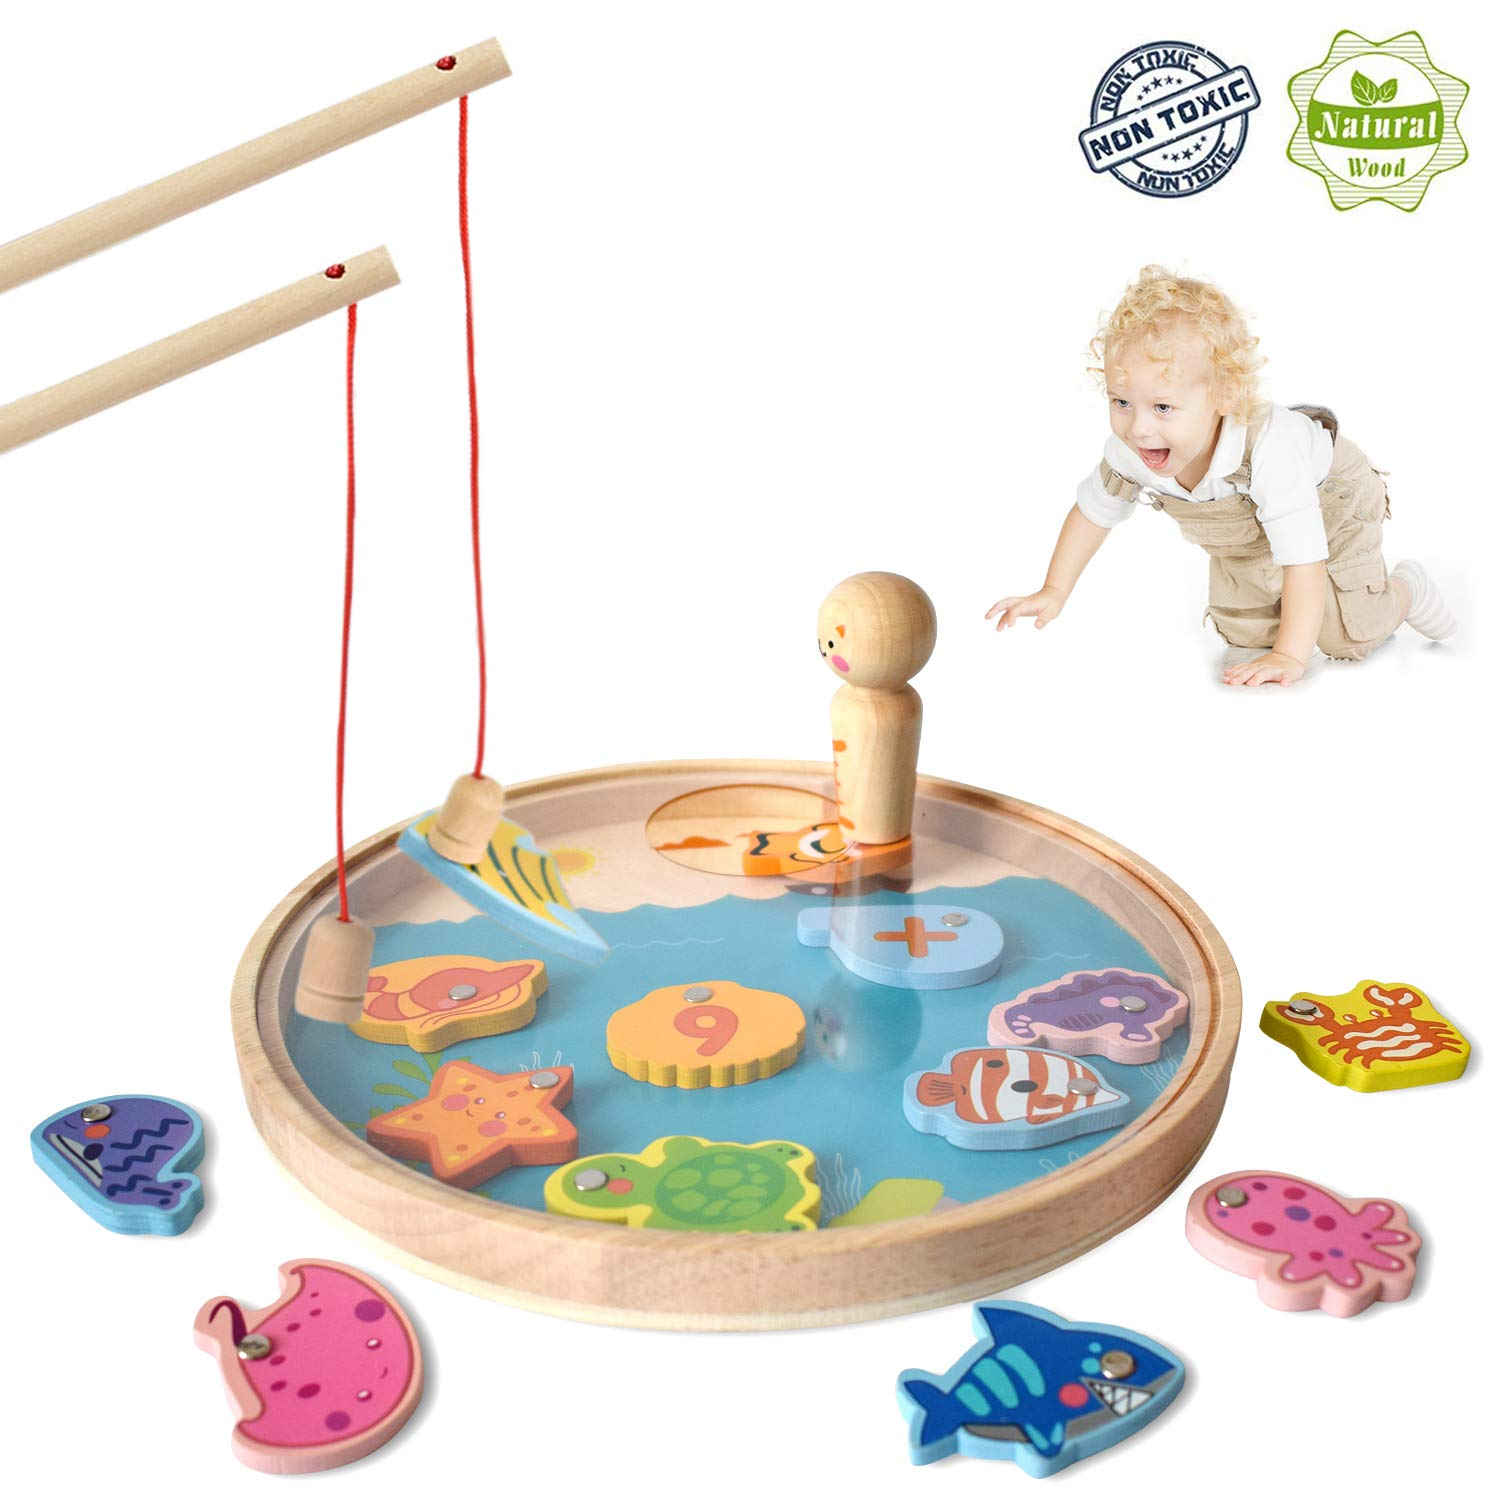 Akamino Wooden Magnetic Fun Fishing Game Toy for Kids with 14 Number Ocean Sea Animals Magnets and 2 Fishing Pole Basic Skills Development Toys for 2 3 Year Old Girl Boy Birthday Party Festival by Akamino